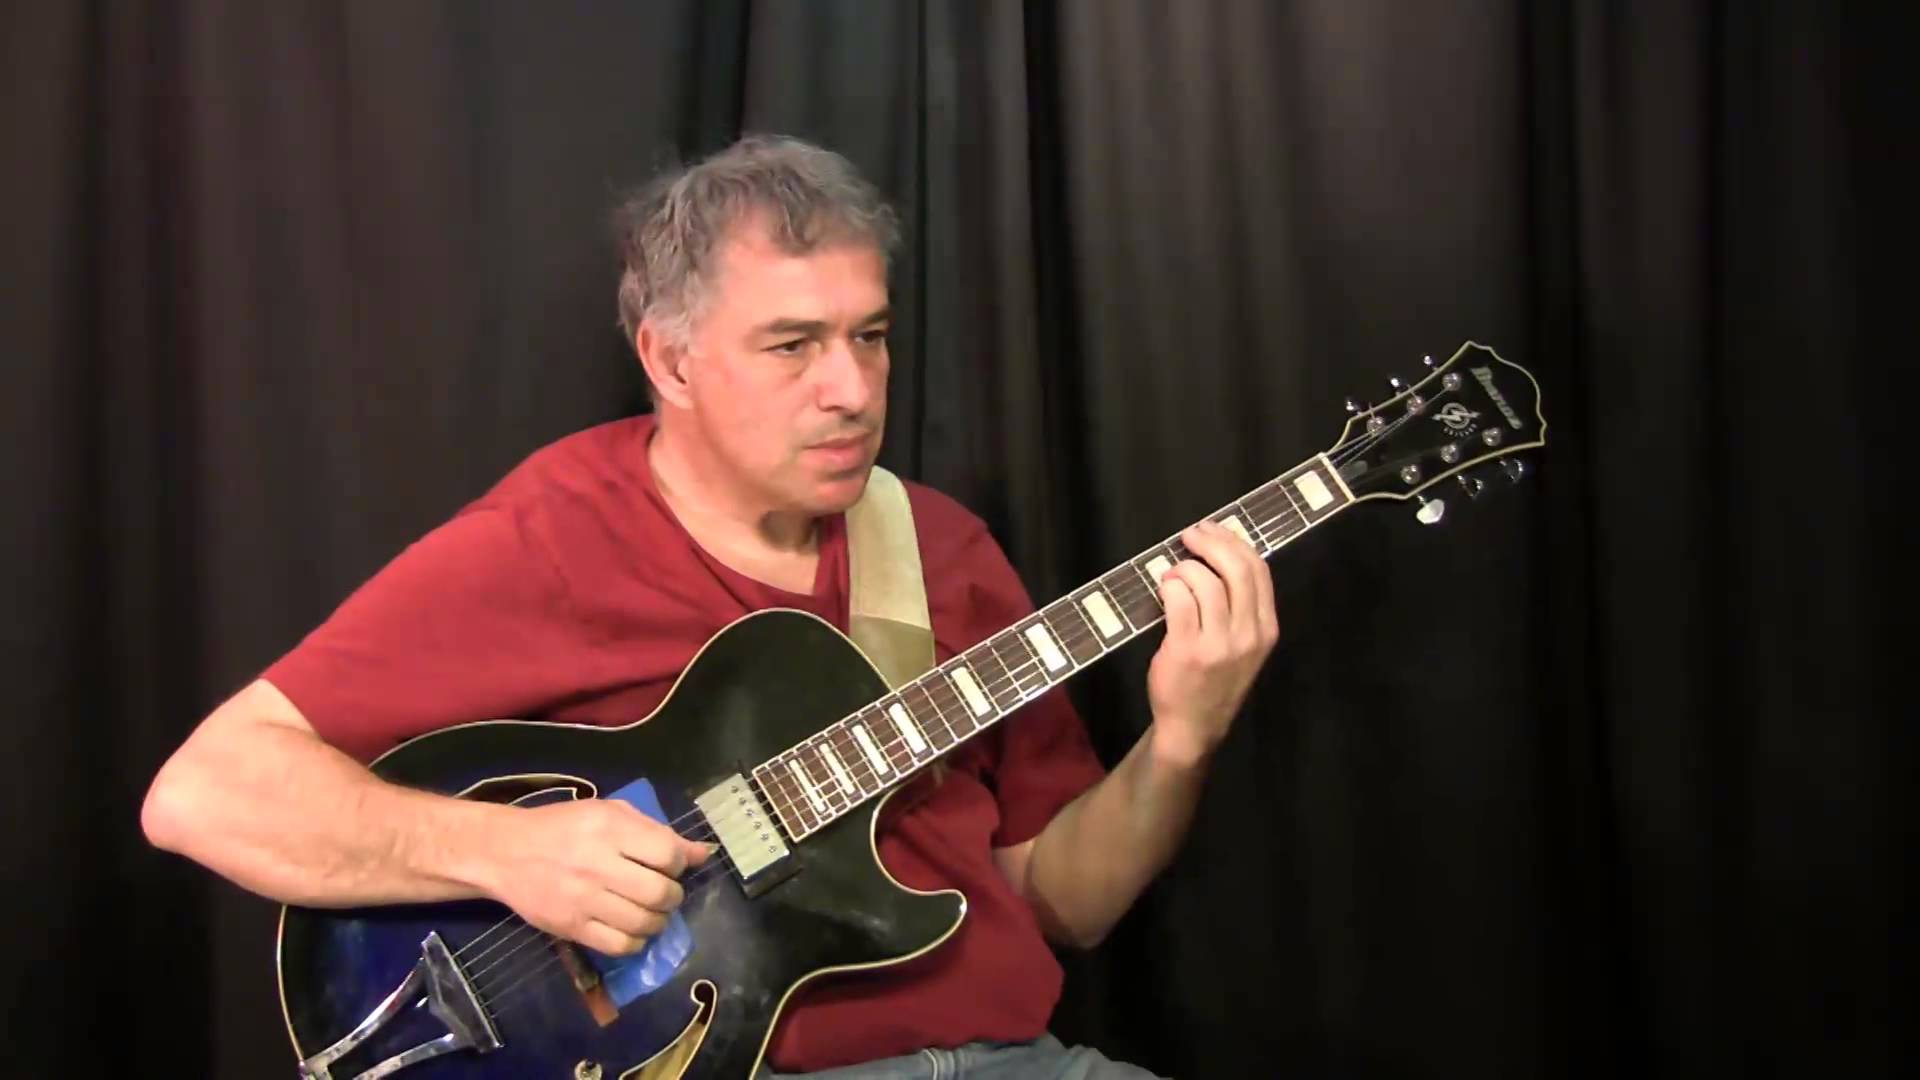 Killing Me Softly, Roberta Flack, fingerstyle guitar cover, Jake Reichbart, lesson available!